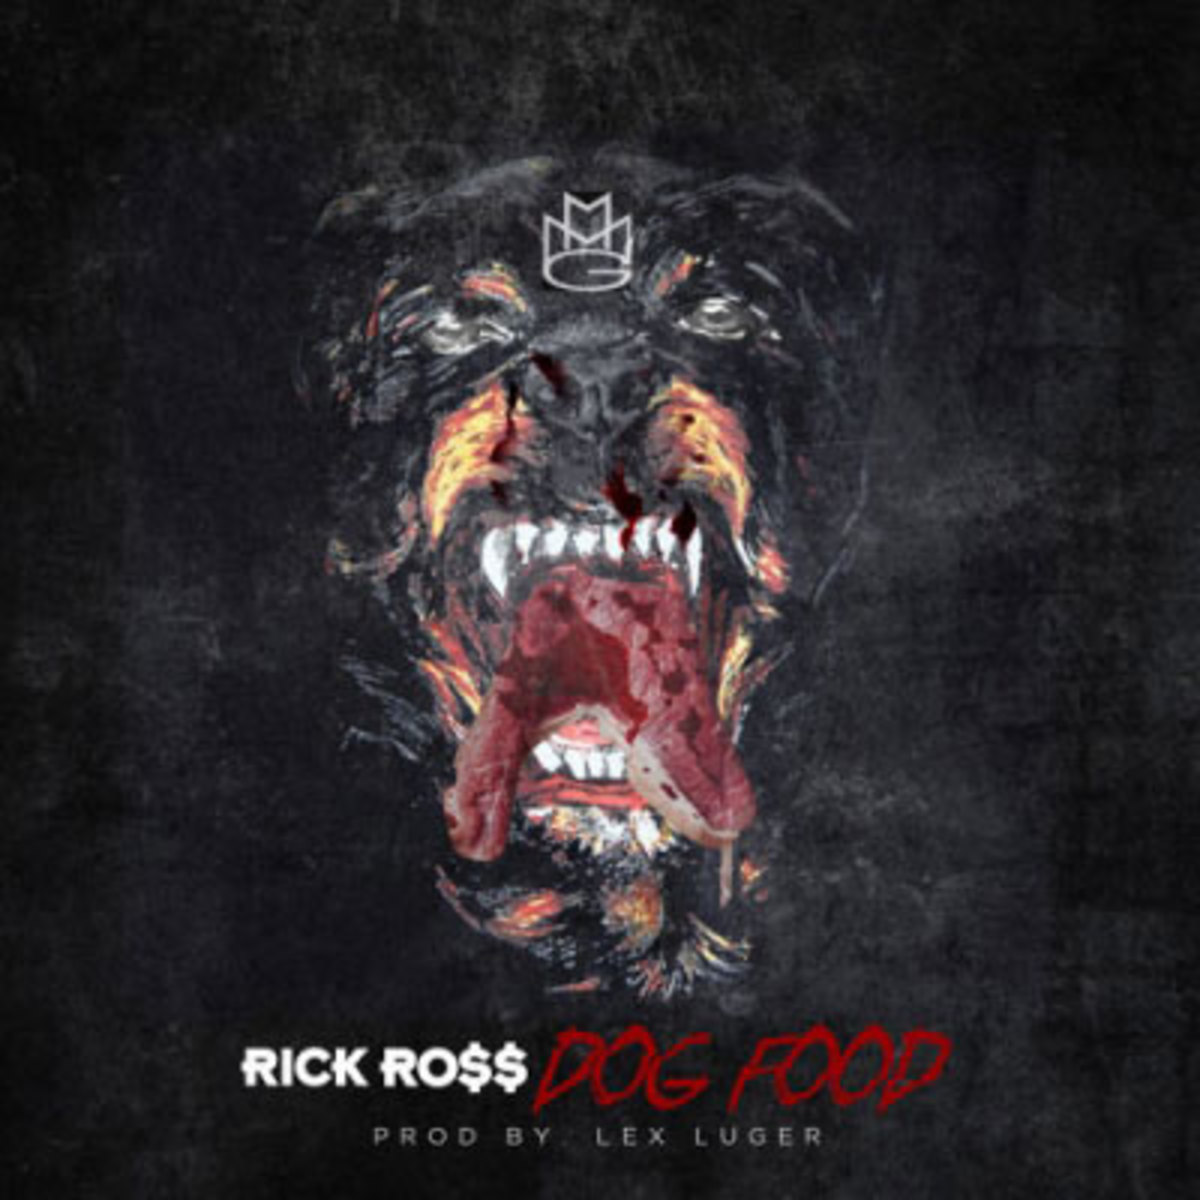 rick-ross-dog-food.jpg